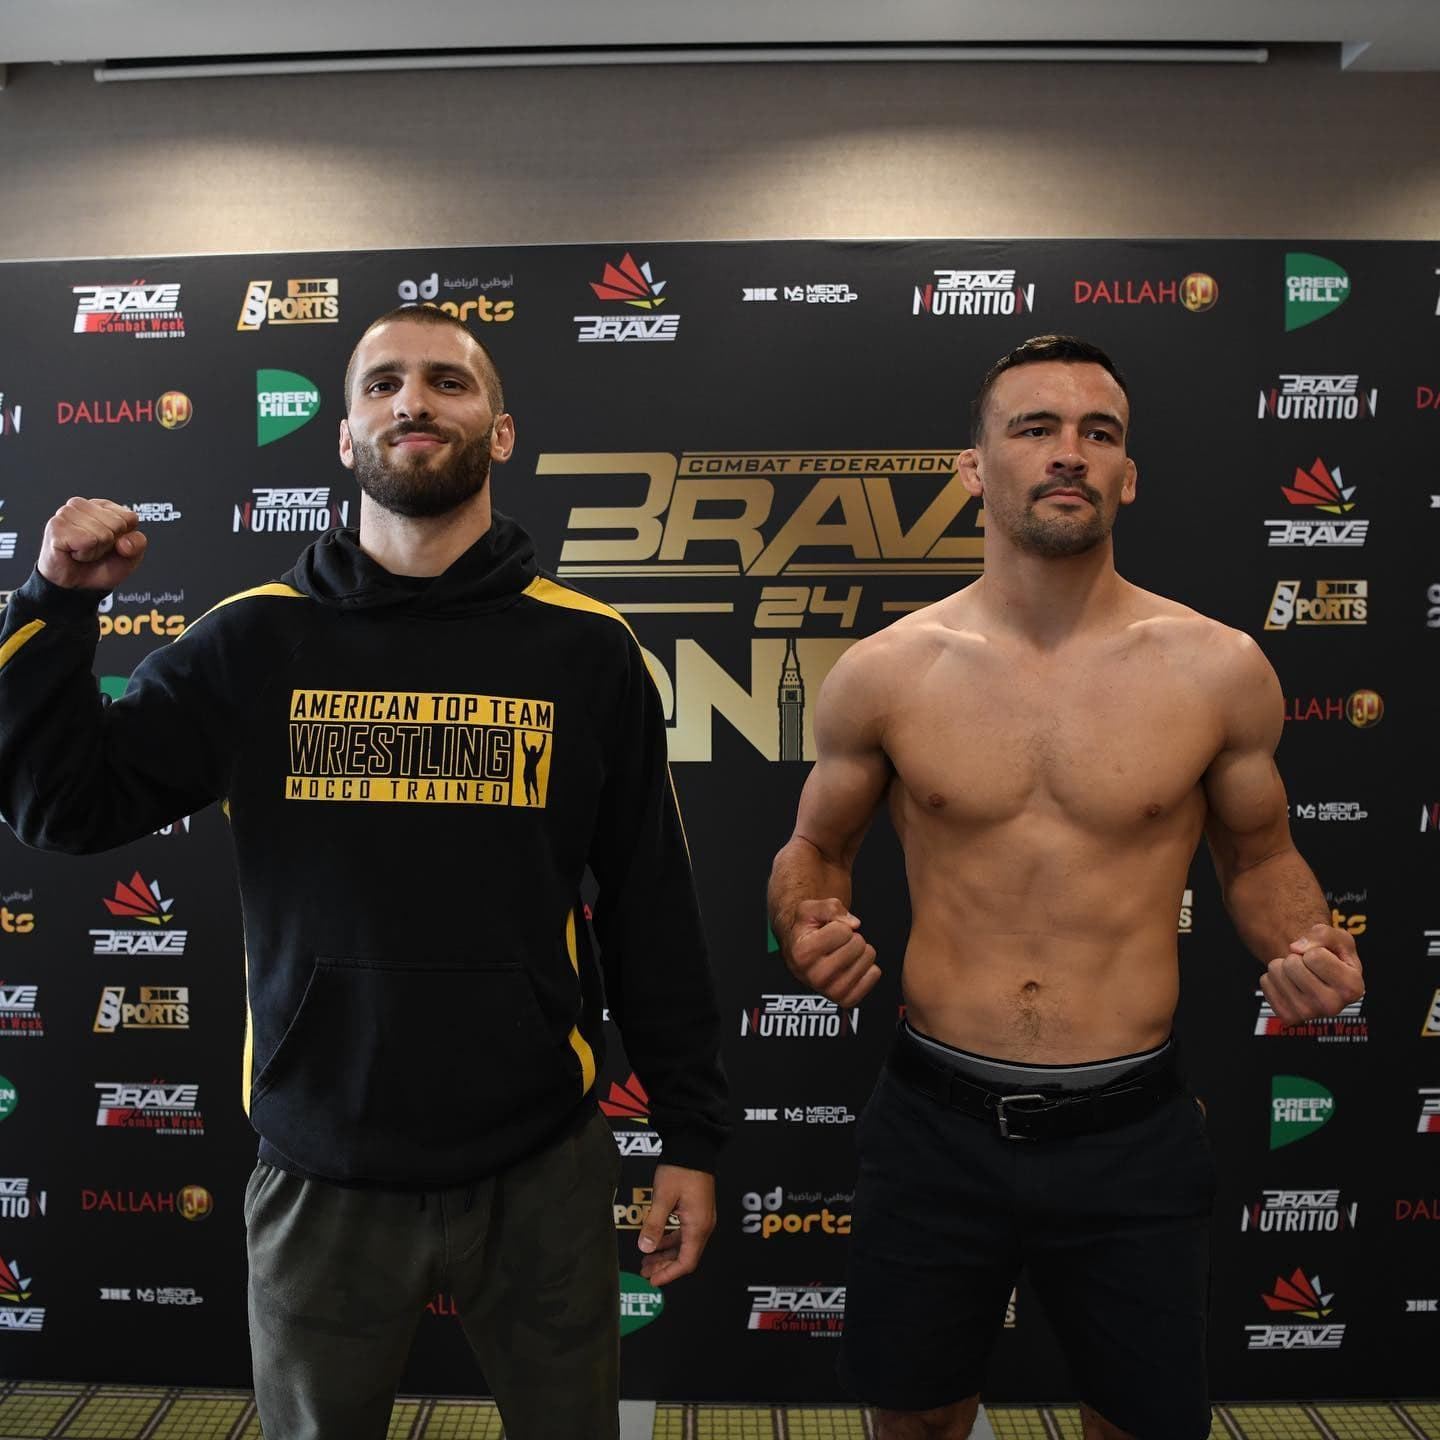 Brave Combat Federation - John Robinson makes his debut on Brave Combat Federation at Brave 24 London.24/07/2019